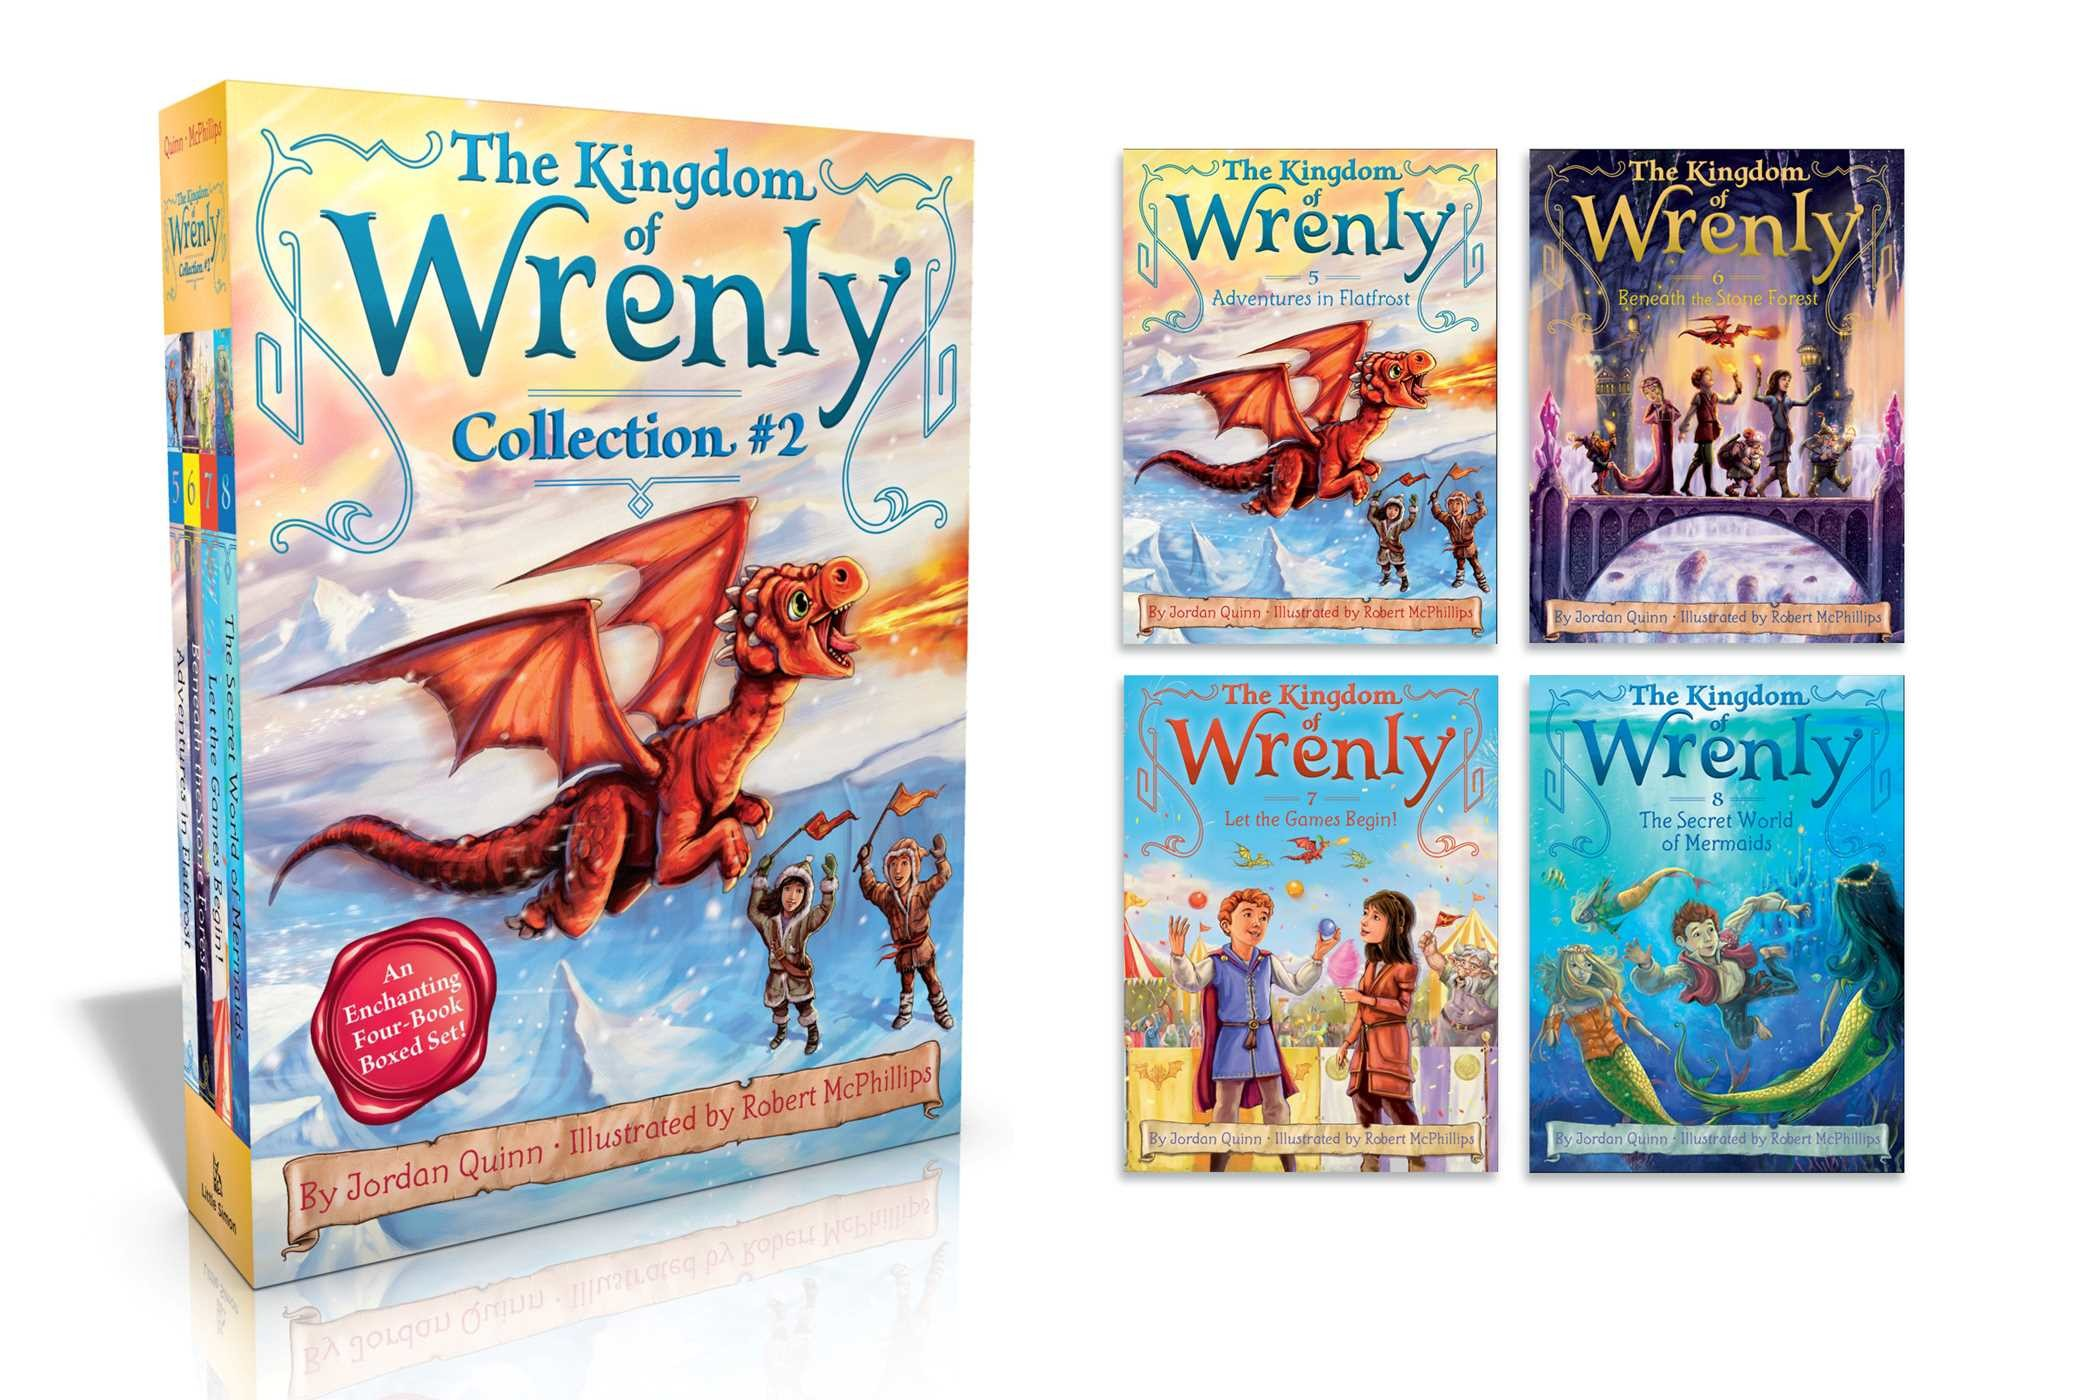 The kingdom of wrenly collection 2 9781481499613.in01